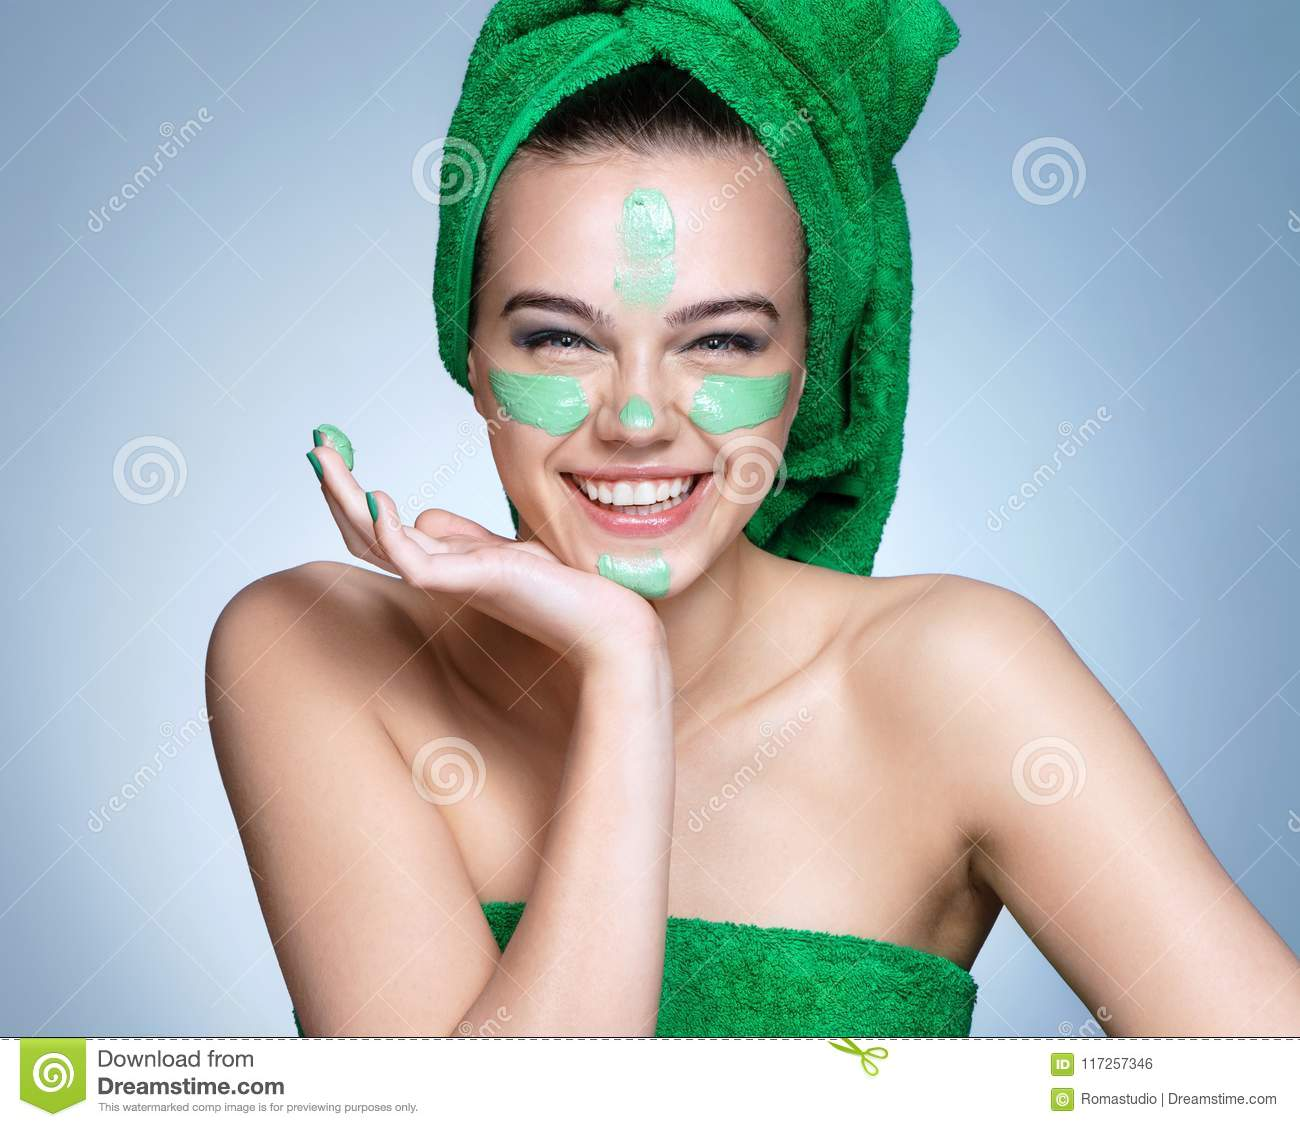 Smiling girl with moisturizing cream on her face.